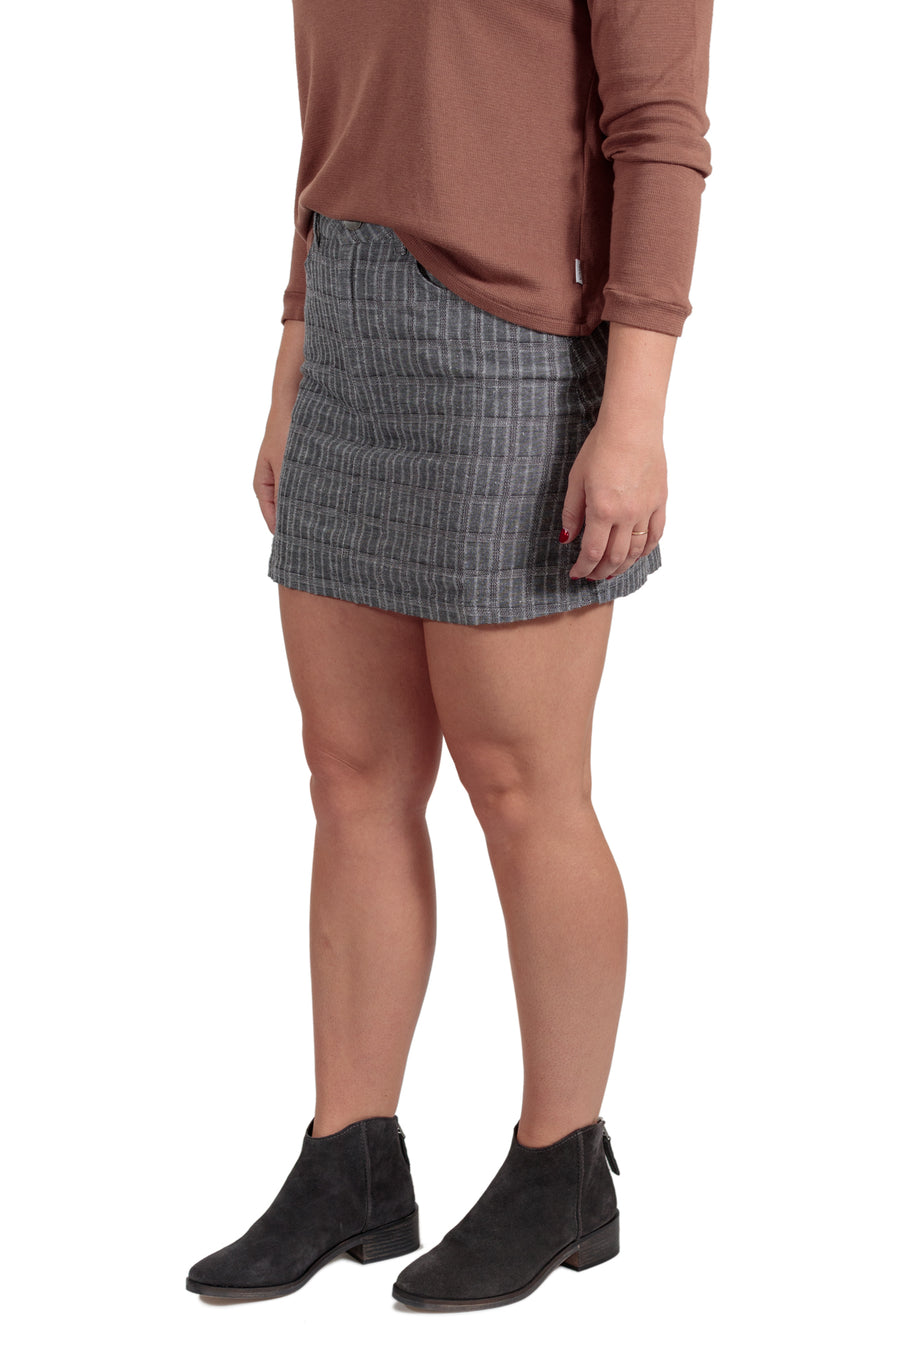 RVCA Rowdy Mini Plaid Skirt - Grey